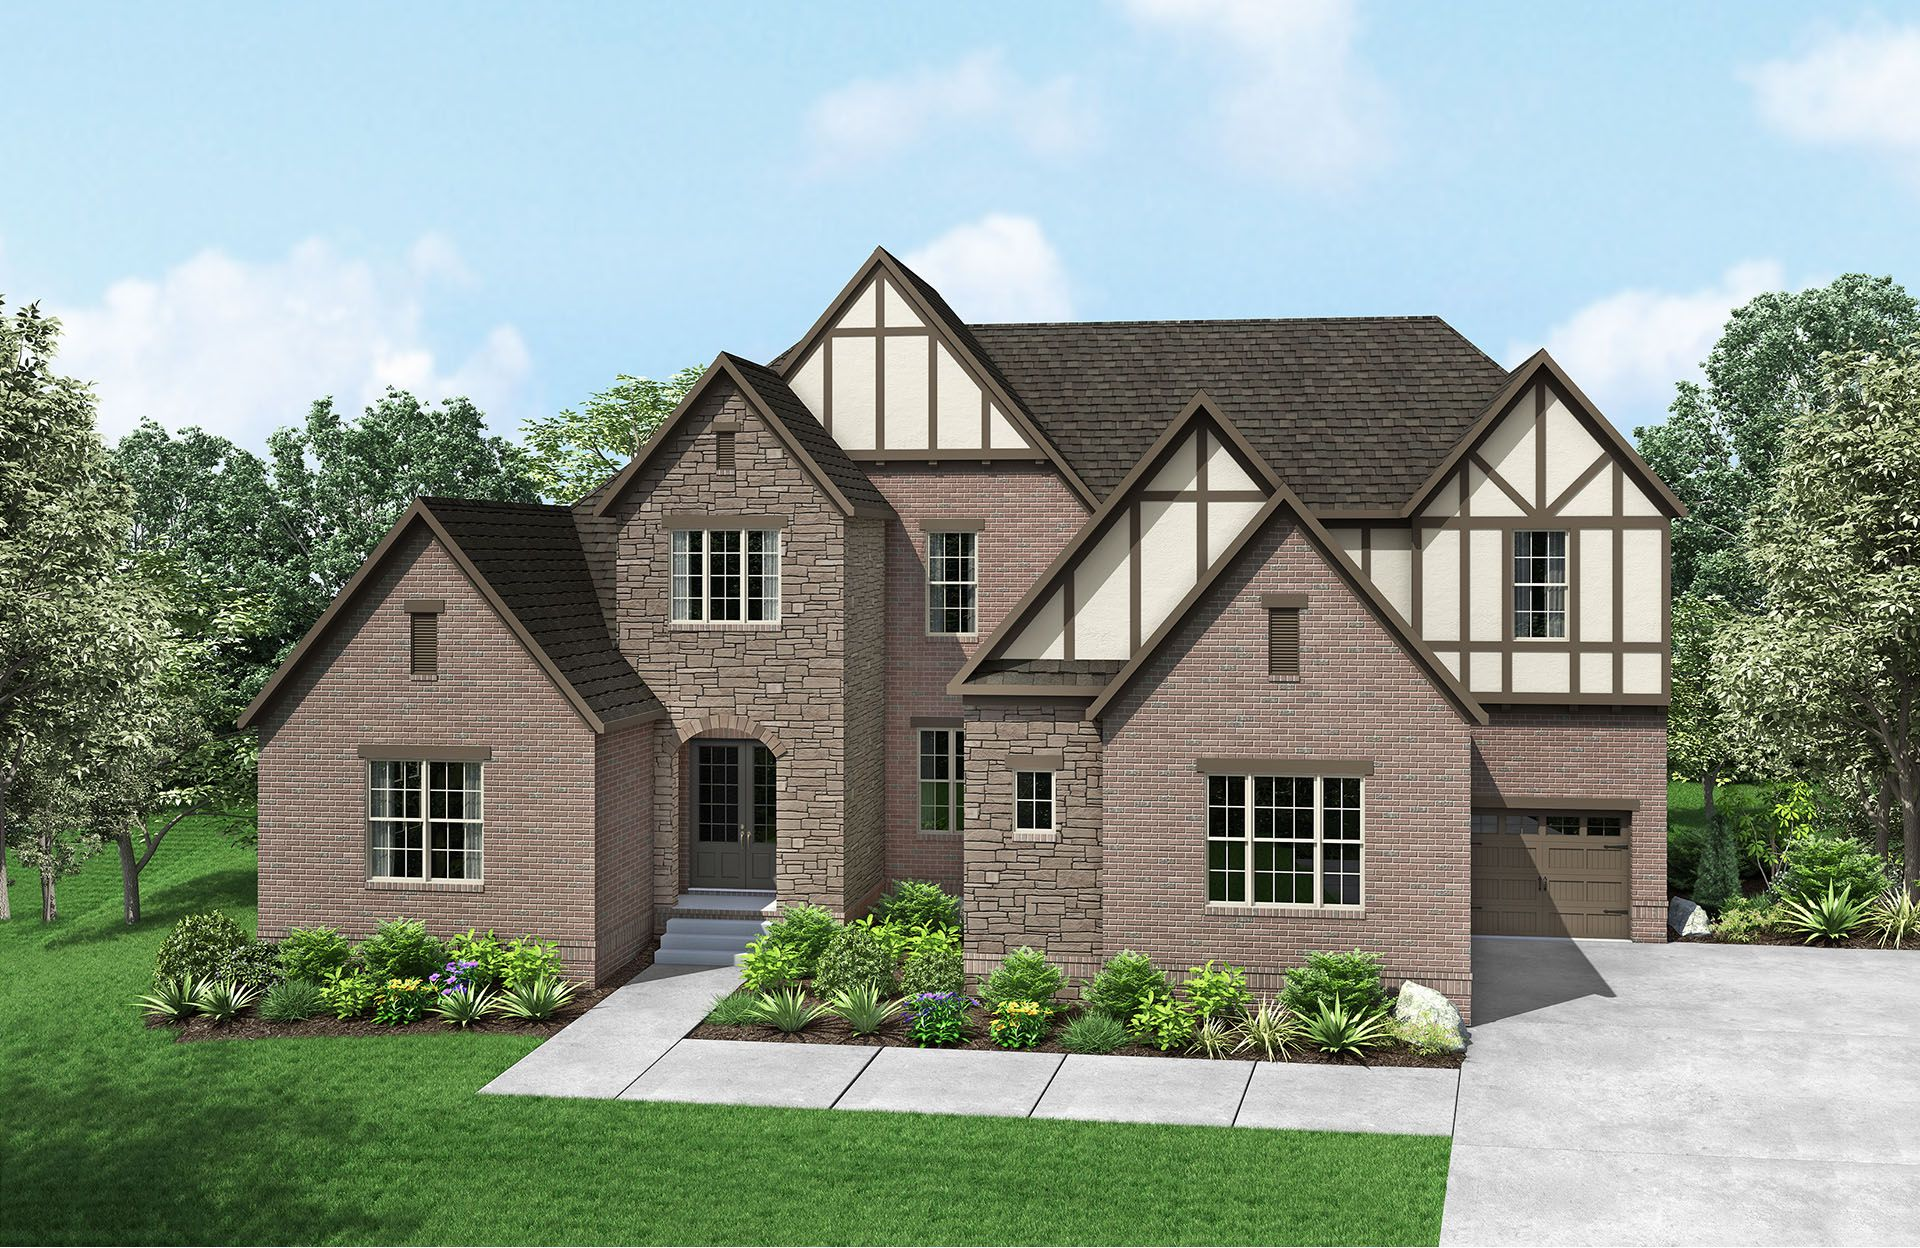 Single Family for Active at Asher - Dresden 108 Telfair Lane Nolensville, Tennessee 37135 United States